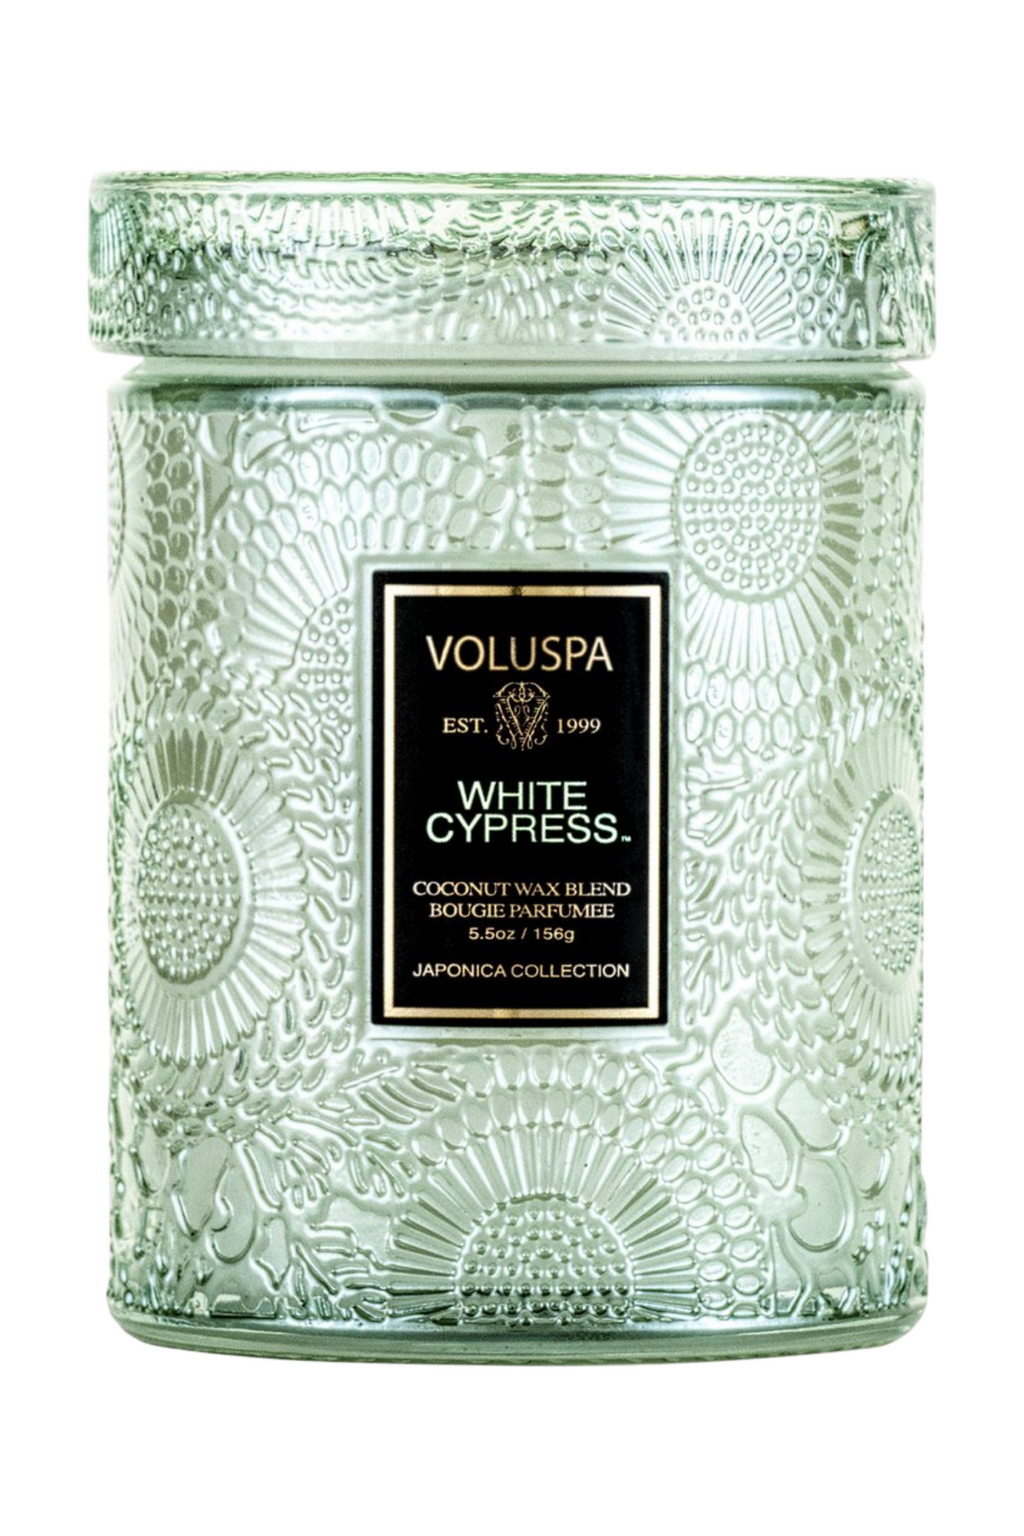 Voluspa Small Embossed Glass Jar - White Cypress